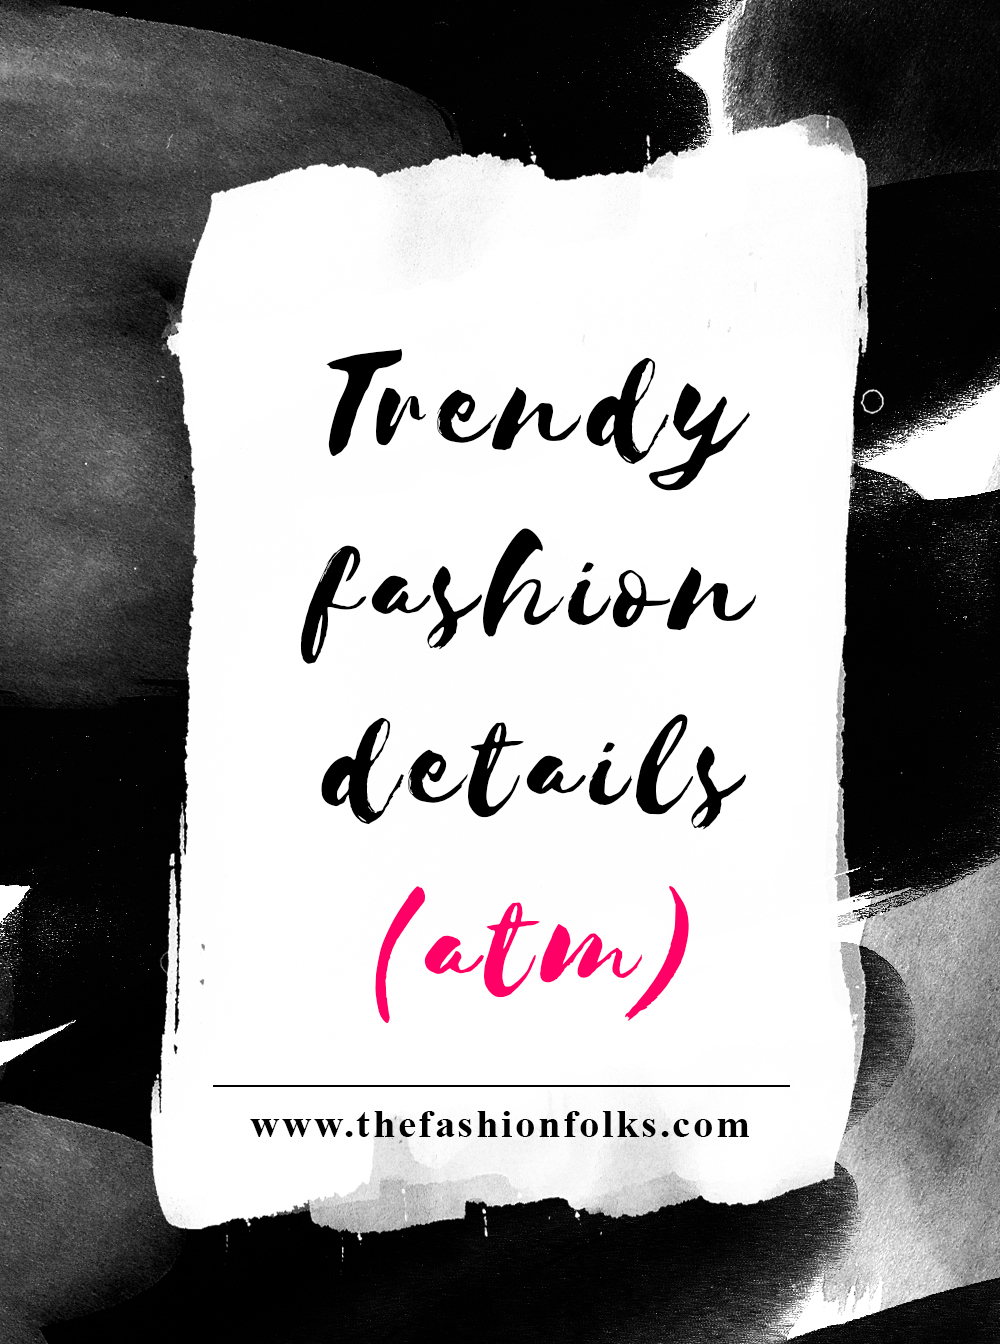 Trendy Fashion Details ATM: Fishnet tights with denim, embroidered clothes, mini-buttons on blouses and statement sleeves | The Fashion Folks